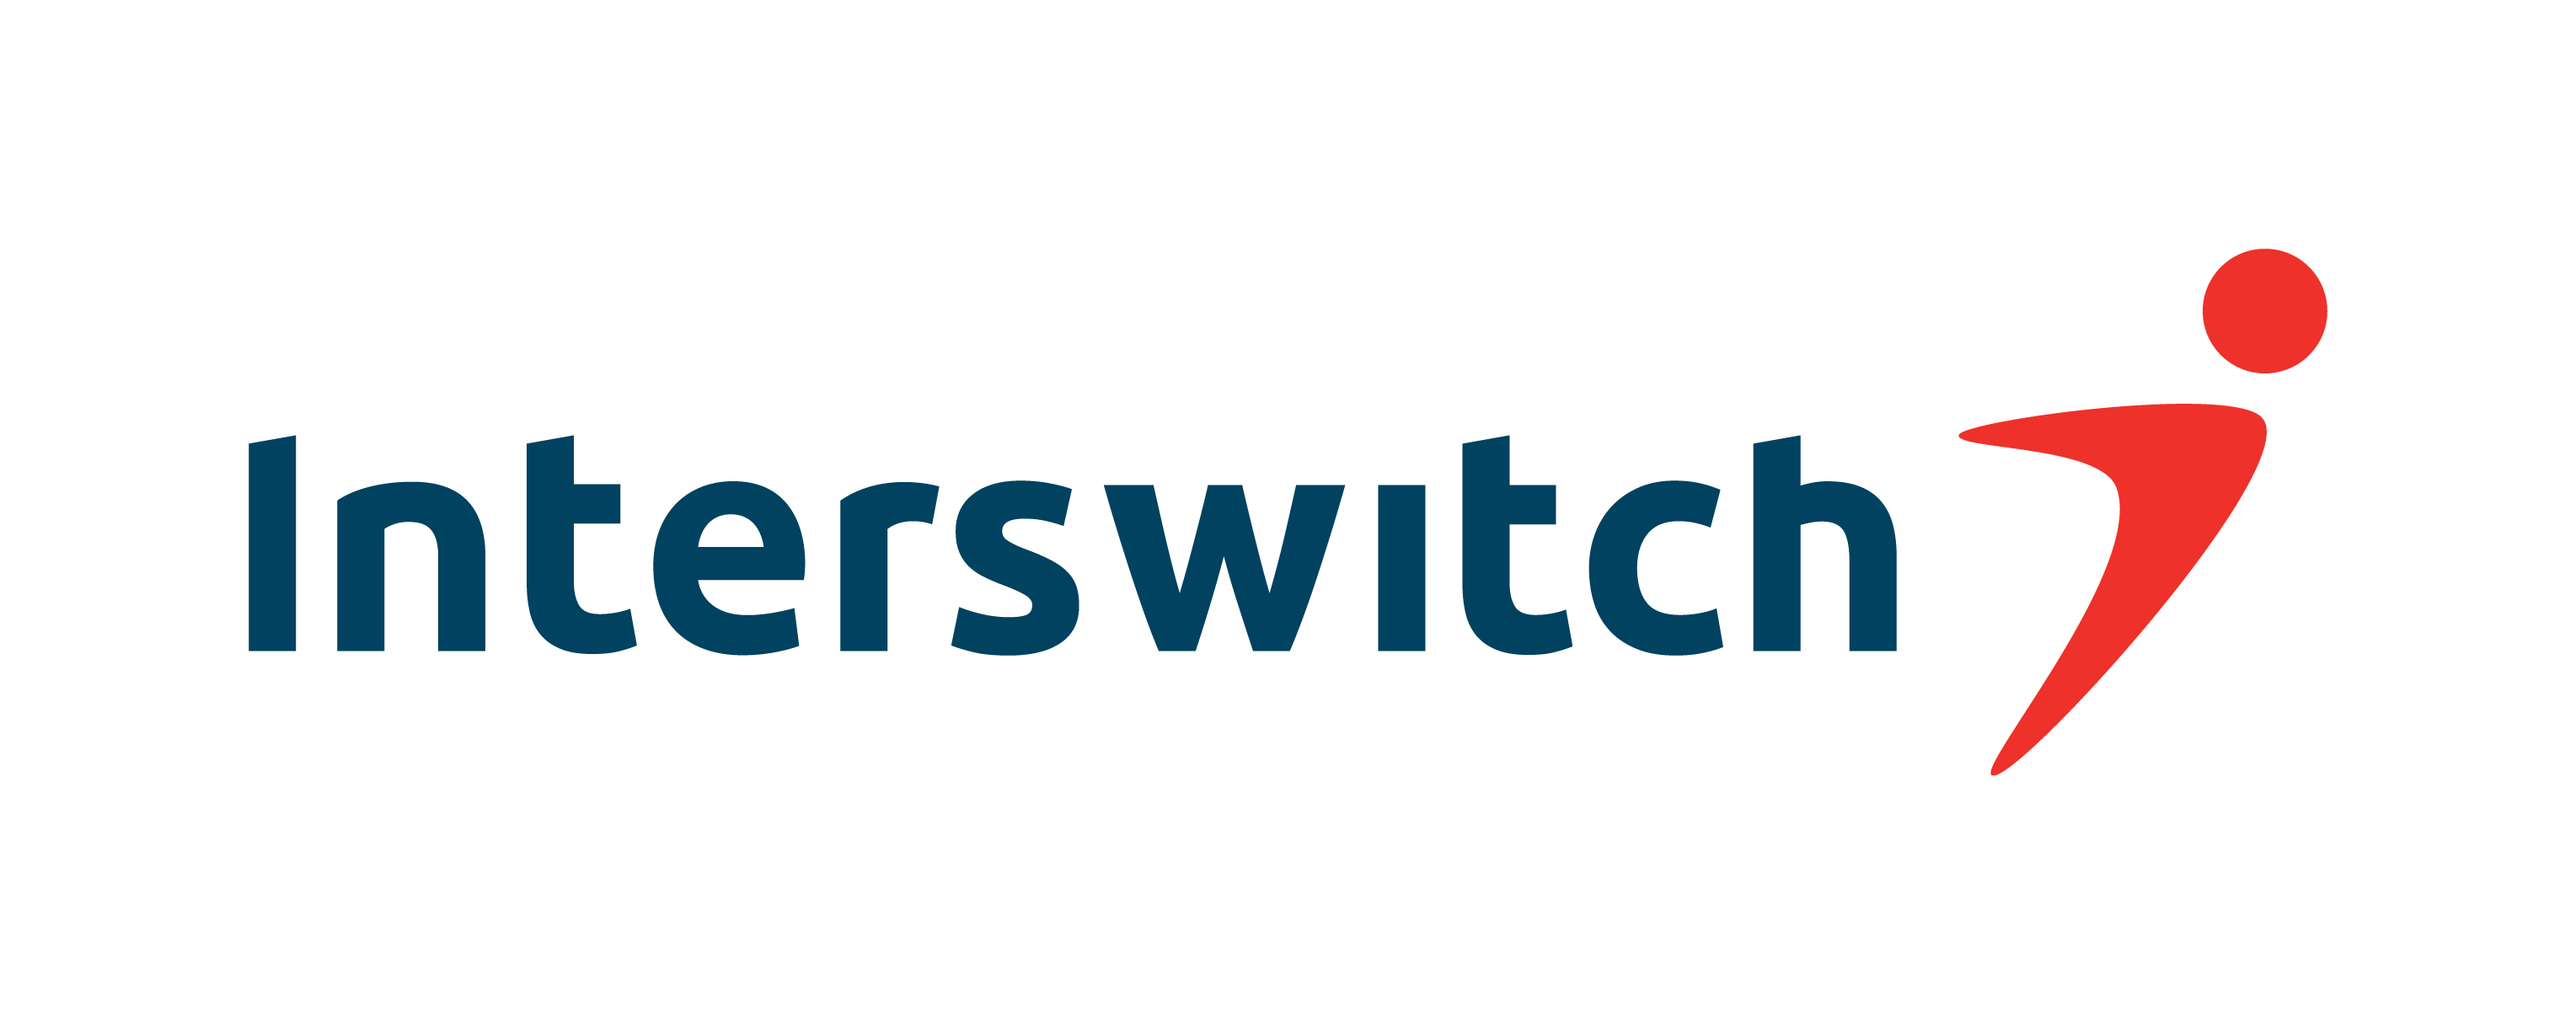 Interswitch Logo